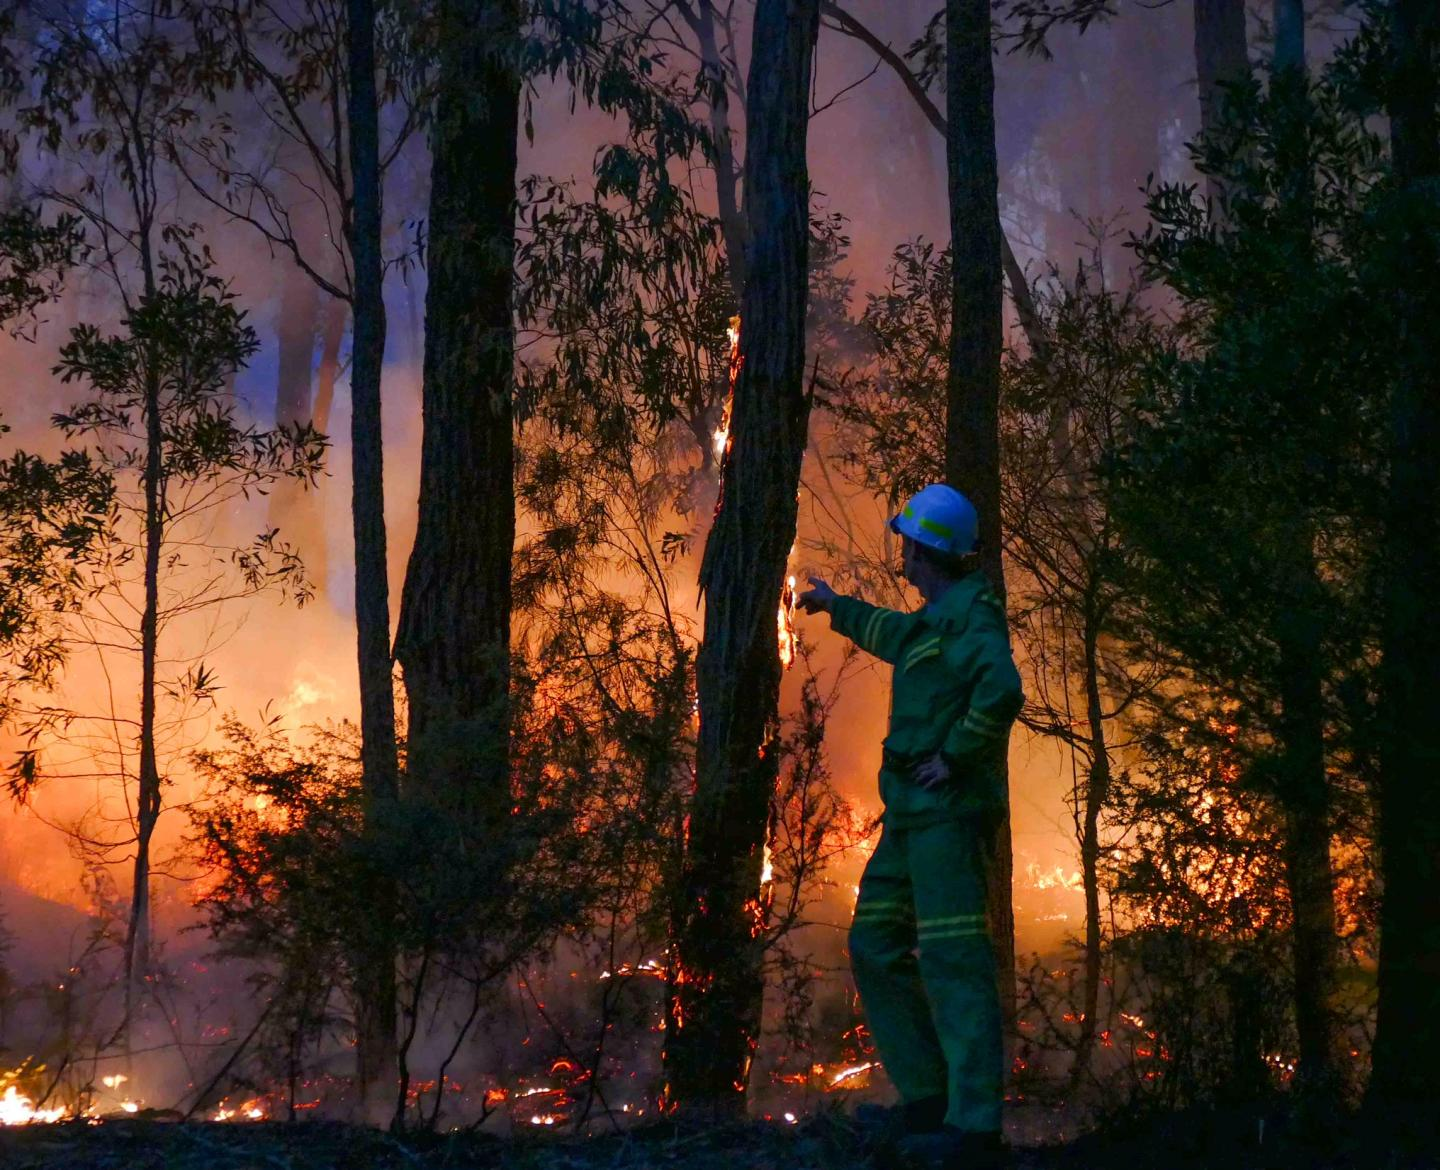 New study shows no wildfire increases due to global warming